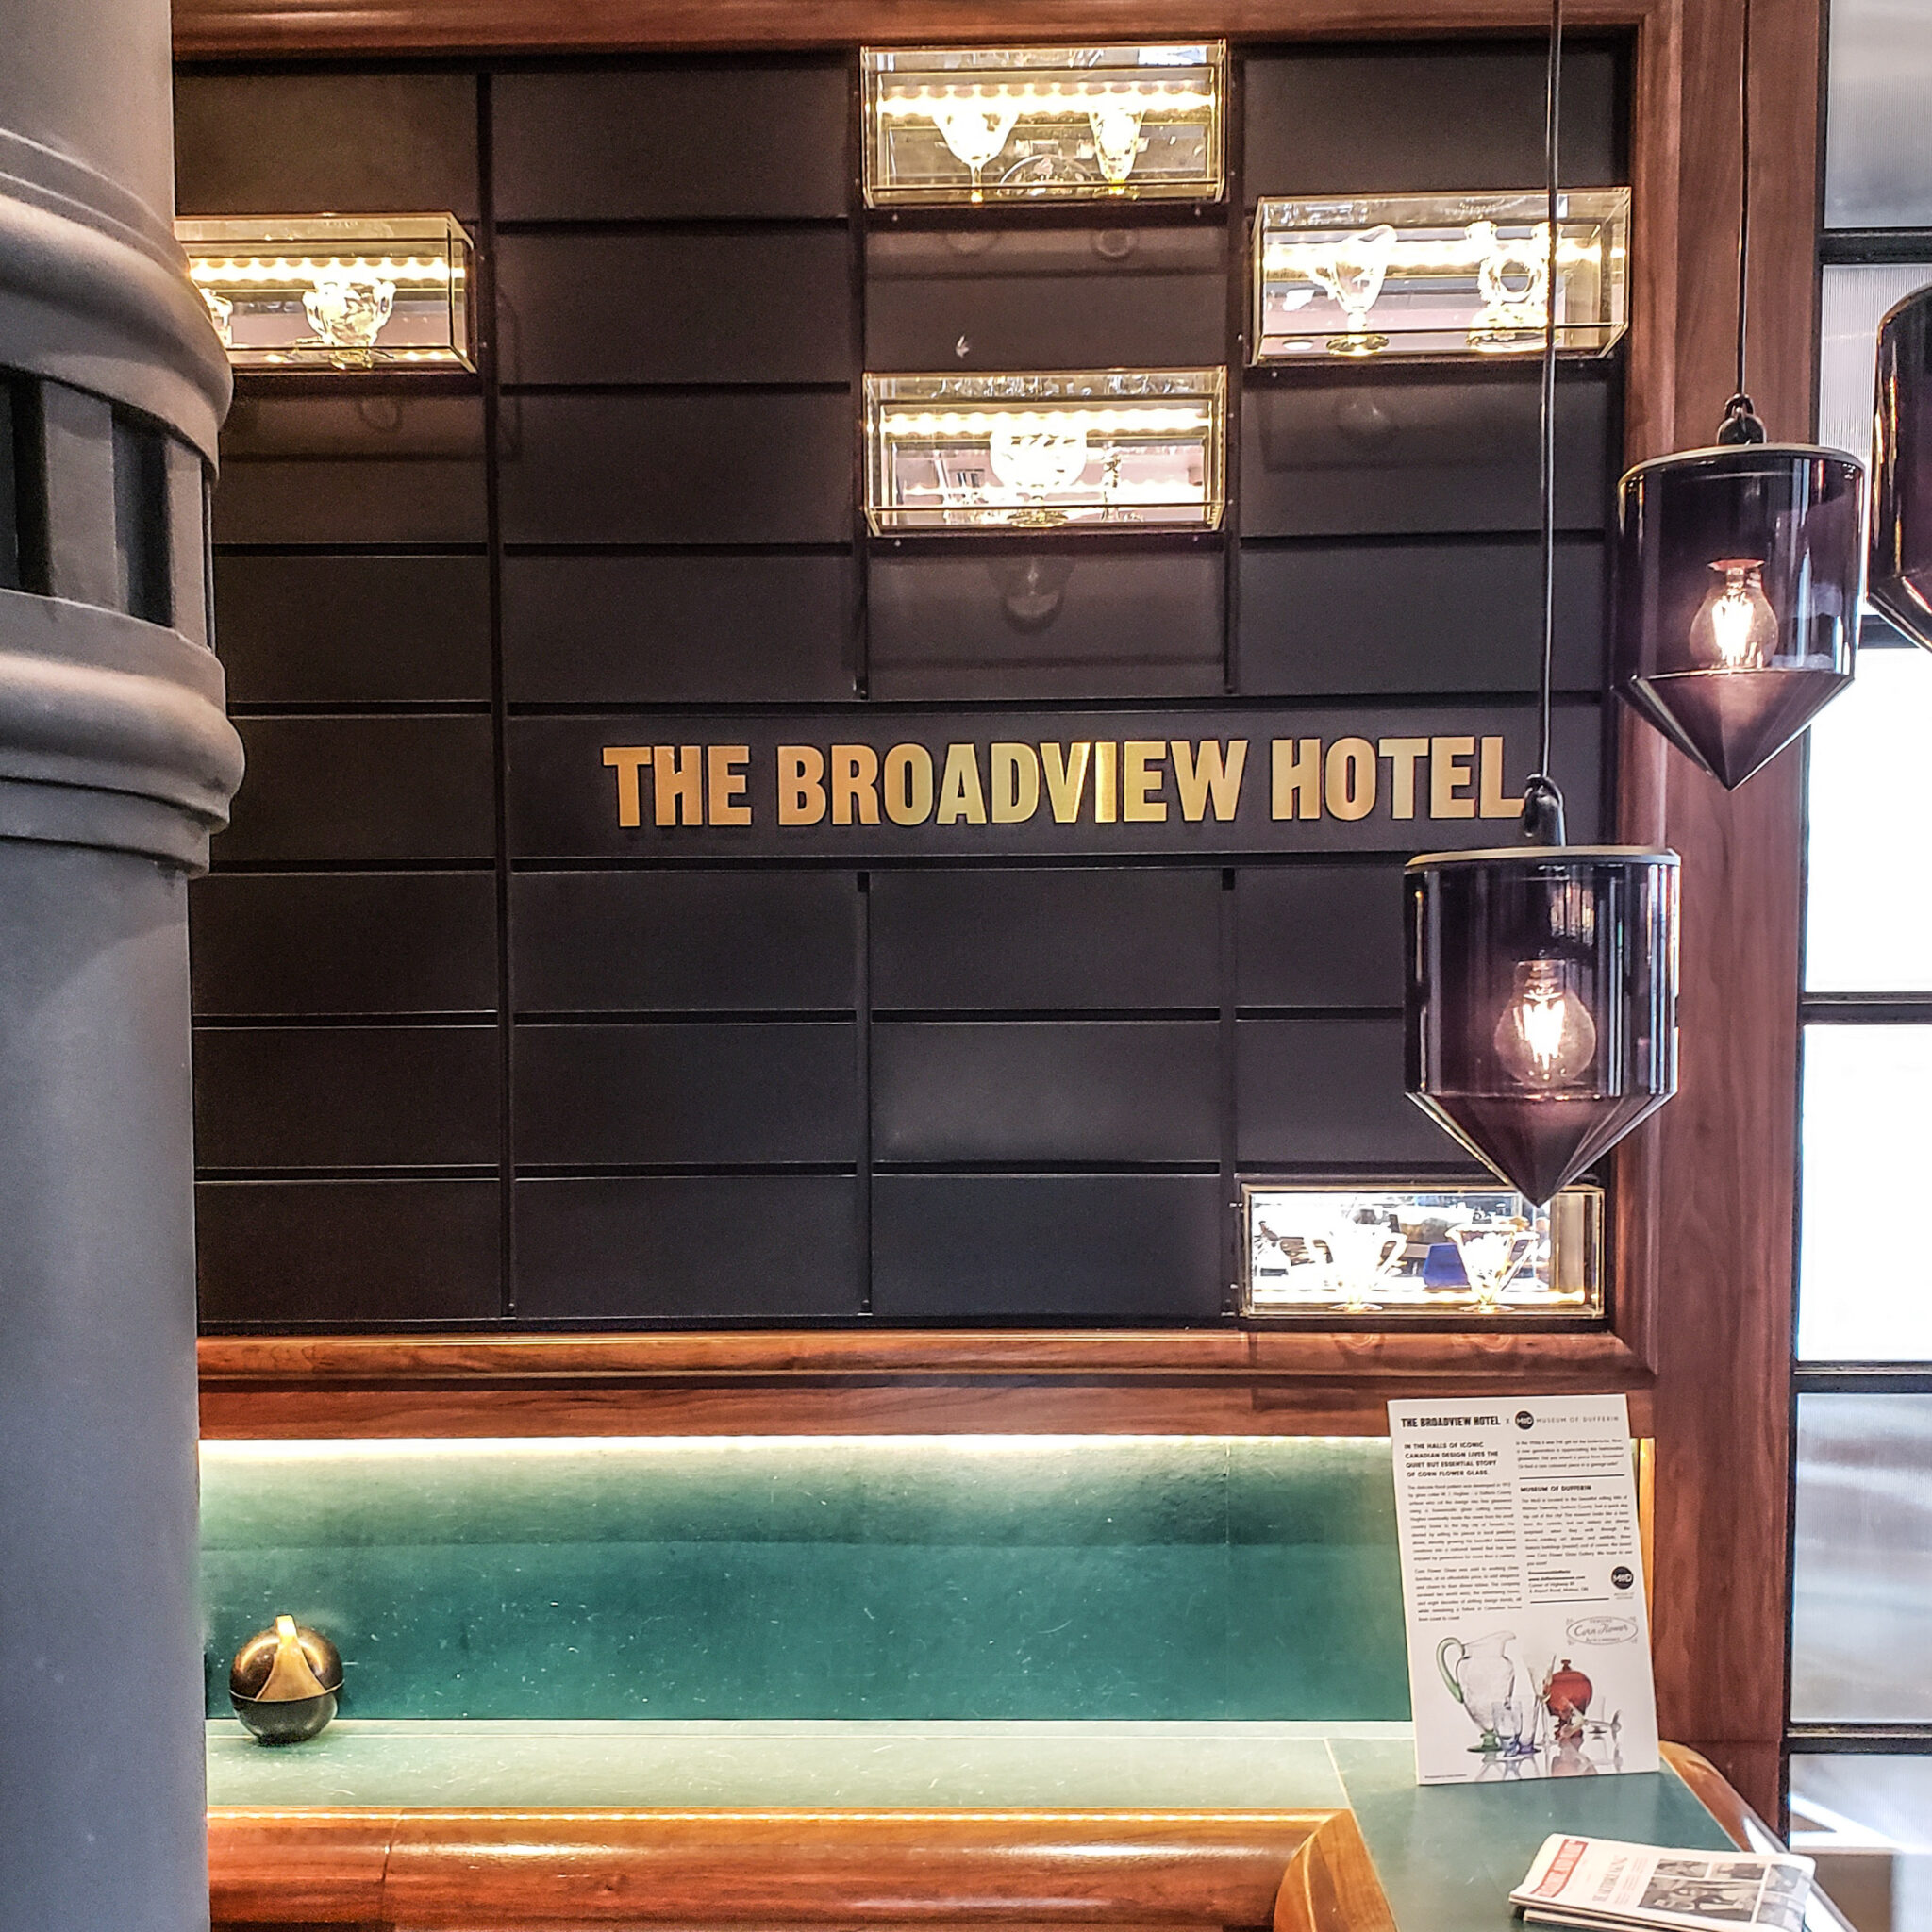 The Broadview Hotel - Broadview Hotel - Queen East - Toronto East - Toronto Life - Boutique Hotel - Front Desk